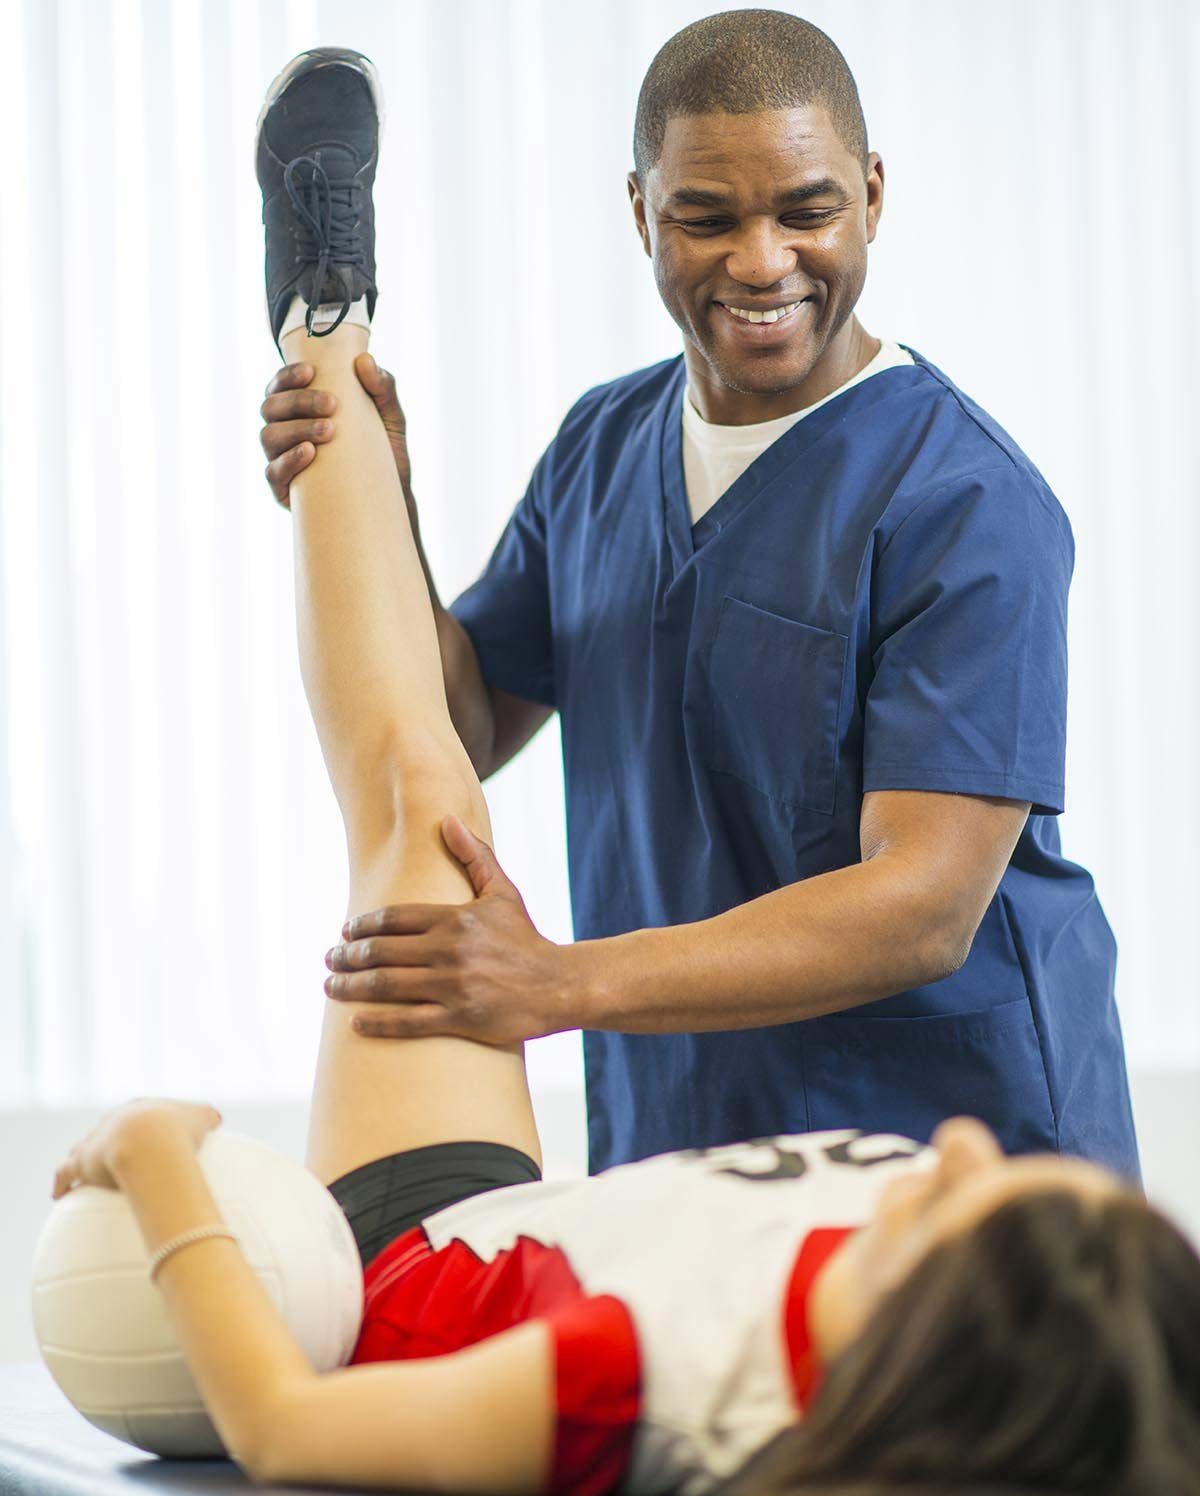 are-sports-therapy-and-massage-professionals-in-de-opt